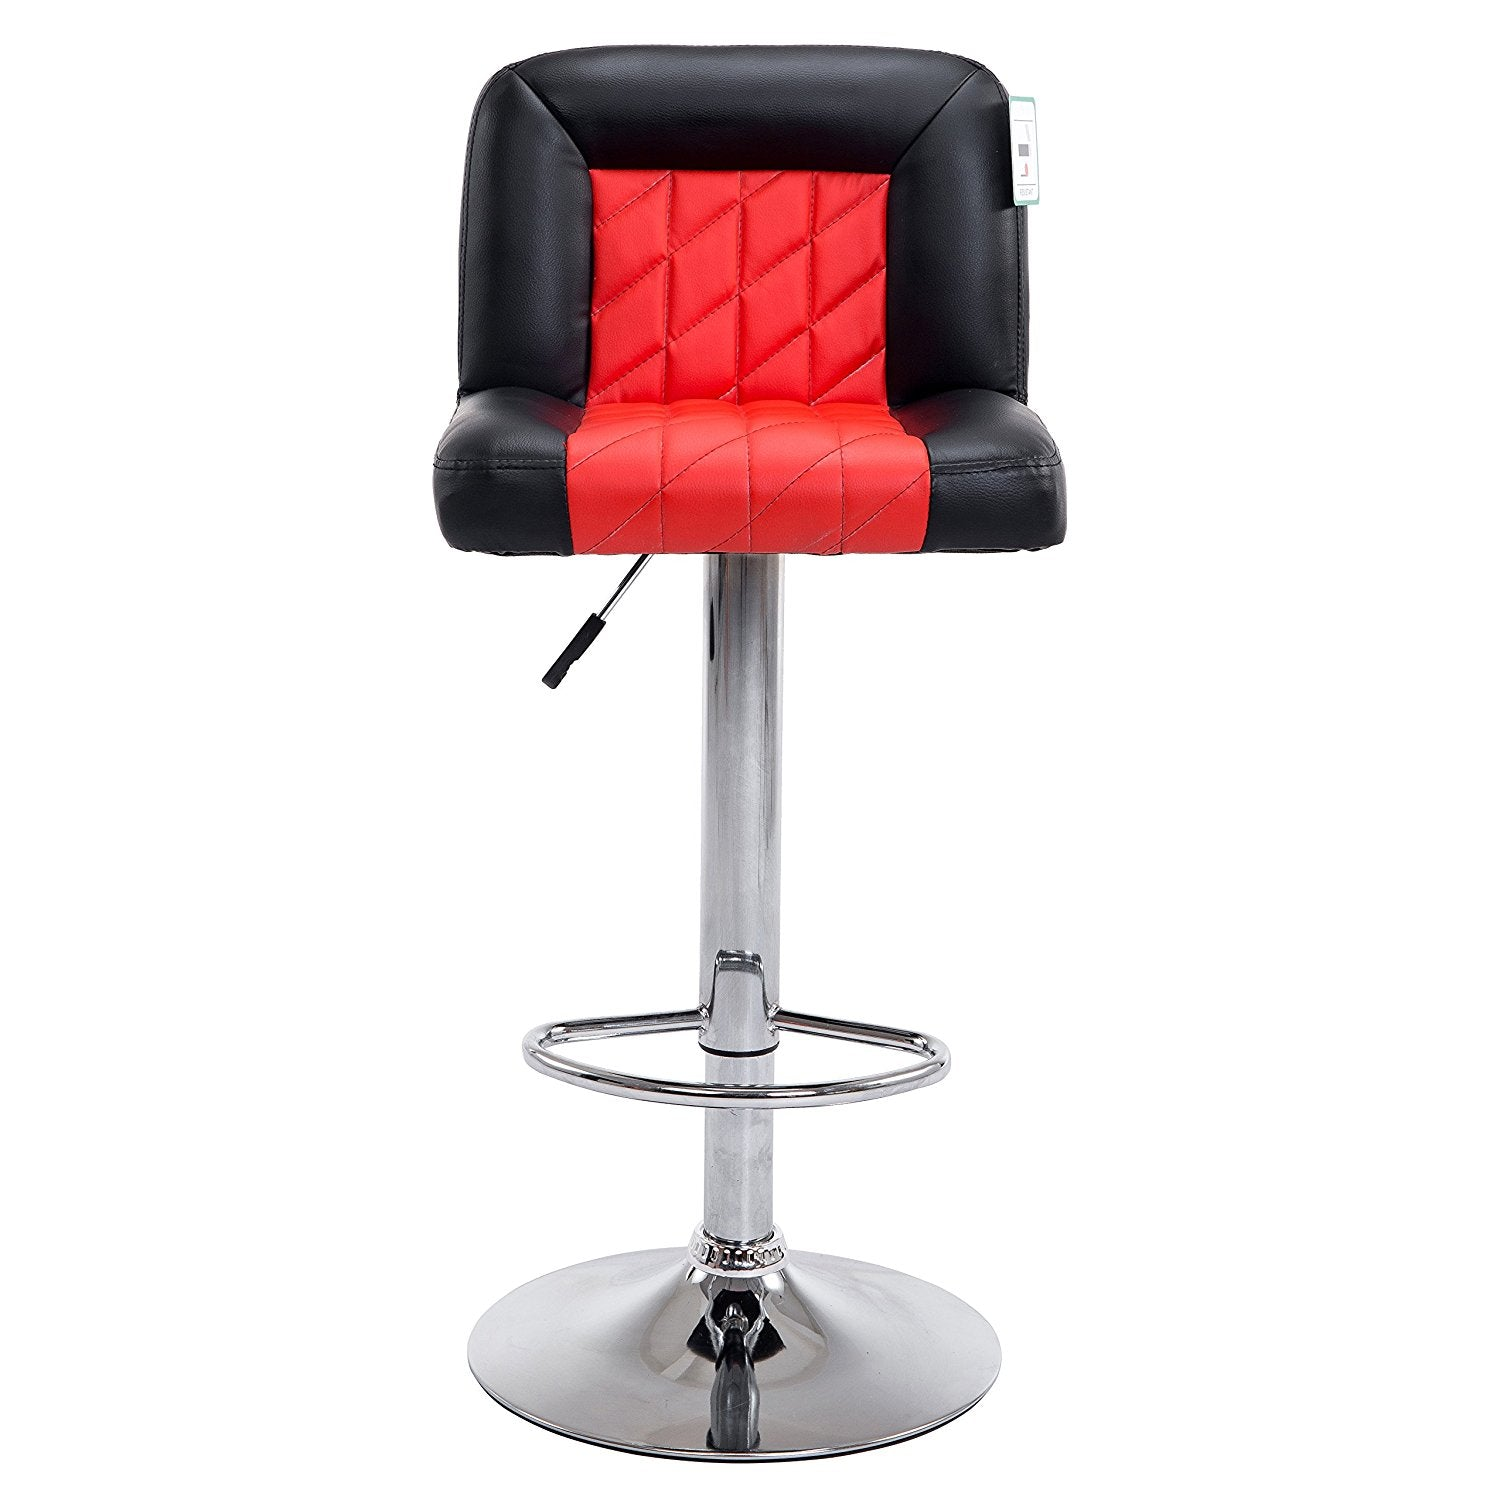 Surprising Faux Leather Chrome Base Diamond Stitch Bar Stool Mb 208 In Pair Black Red Pdpeps Interior Chair Design Pdpepsorg